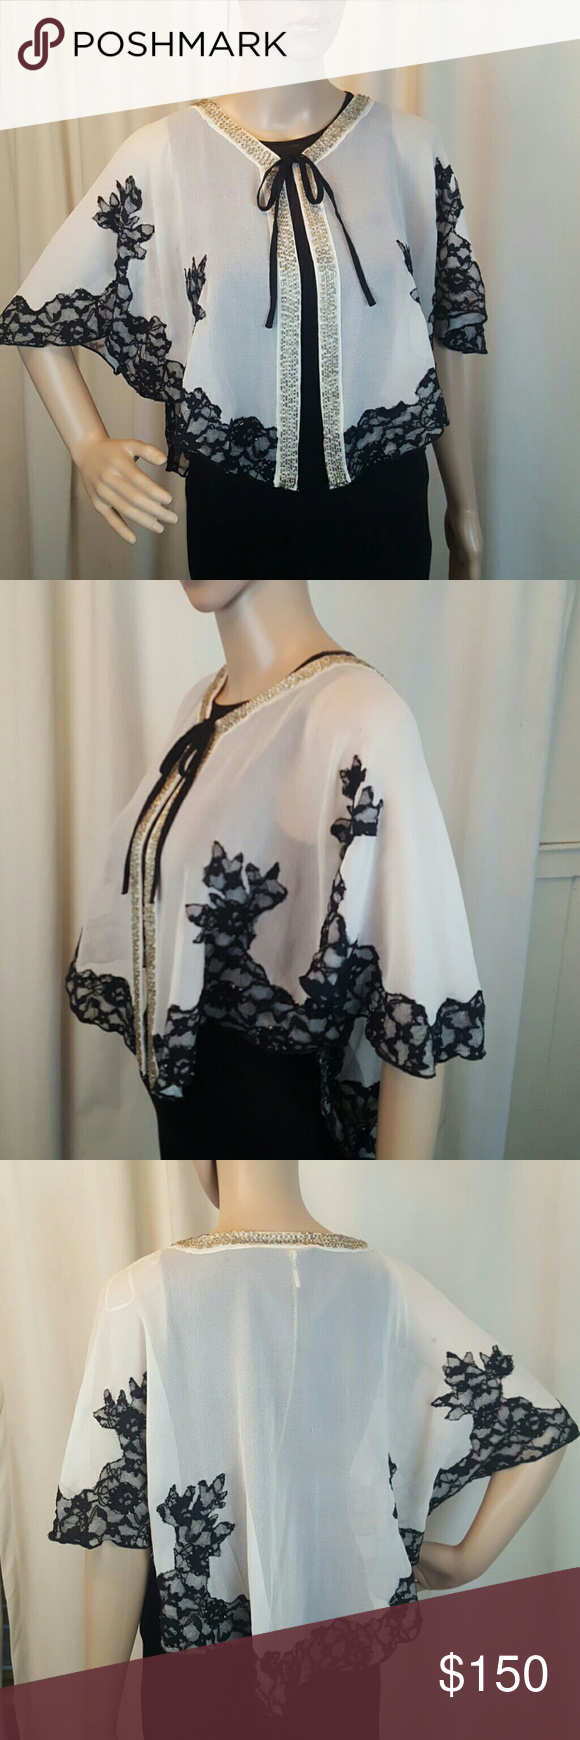 Romeo & Juliet Couture Cape Medium NWT ! $175.00 Romeo & Juliet Couture Cape Wrap Medium NWT ! $175.00  INCREDIBLE detail on this piece and it is stunning!!!  Hand beaded down the collar, hand sewn beads on the black lace, as well.   Brand new with tags attached!!!! Romeo & Juliet Couture Jackets & Coats Capes